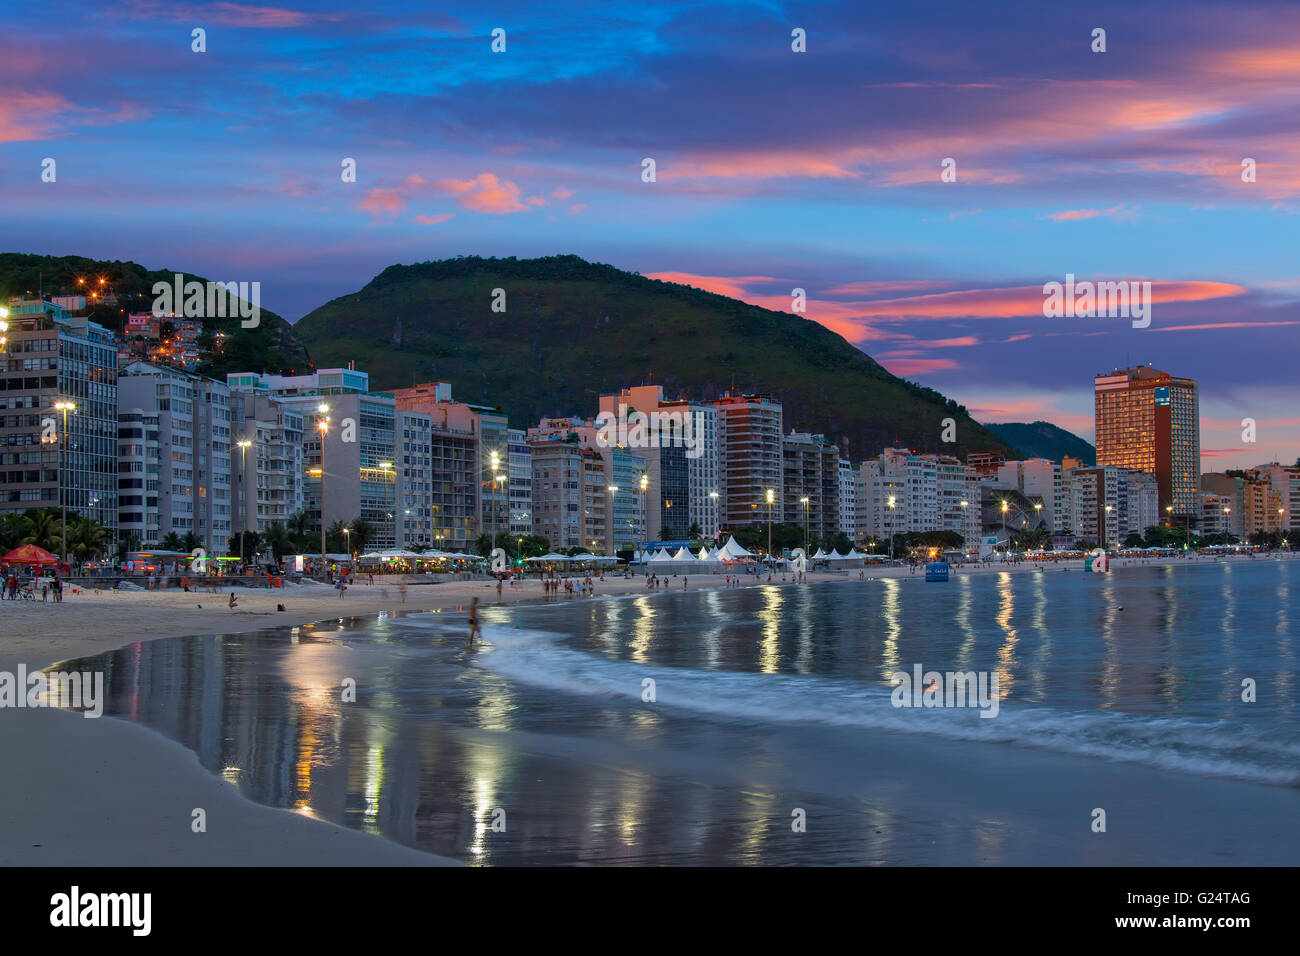 Copacabana beach at night Stock Photo